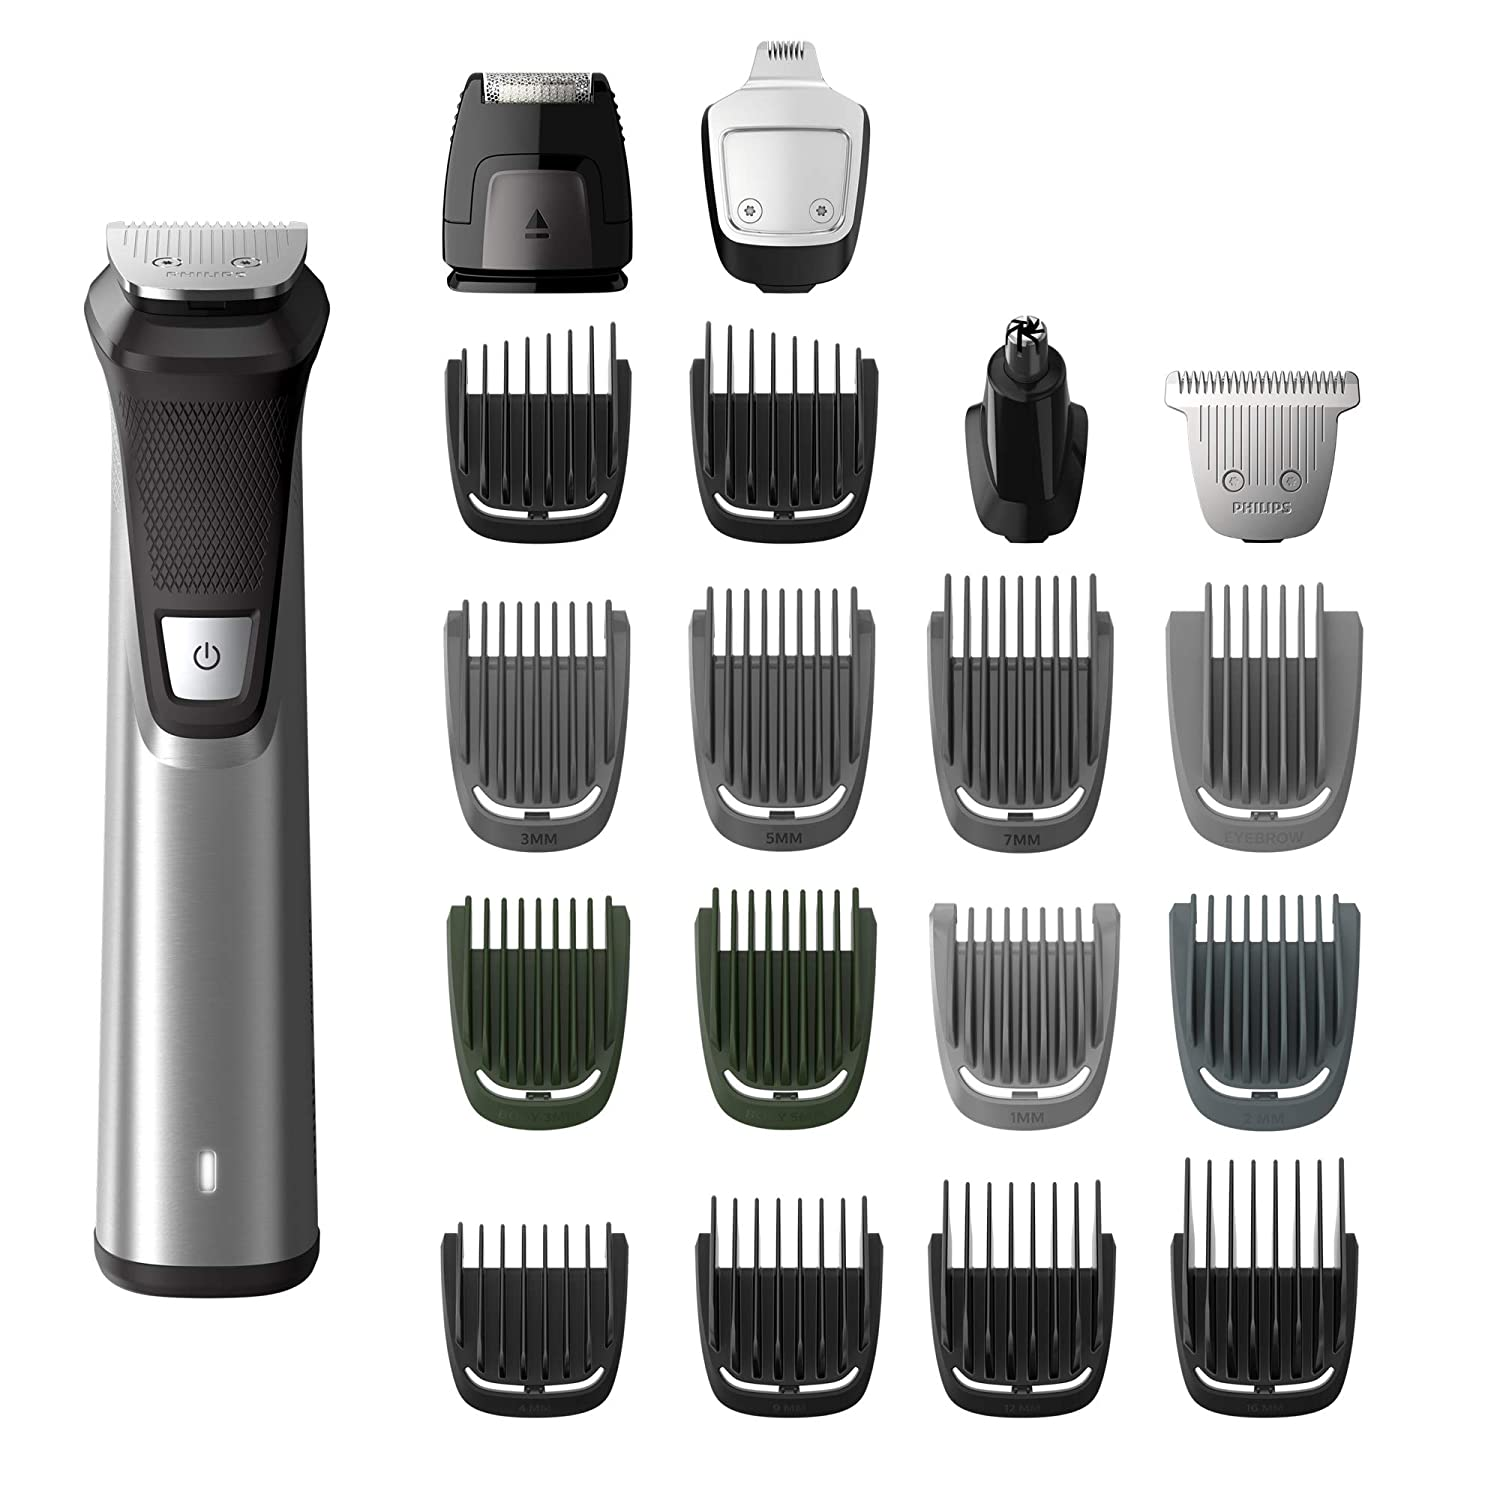 philips norelco 775049 multigroom series 7000 trimmer, men's grooming kit